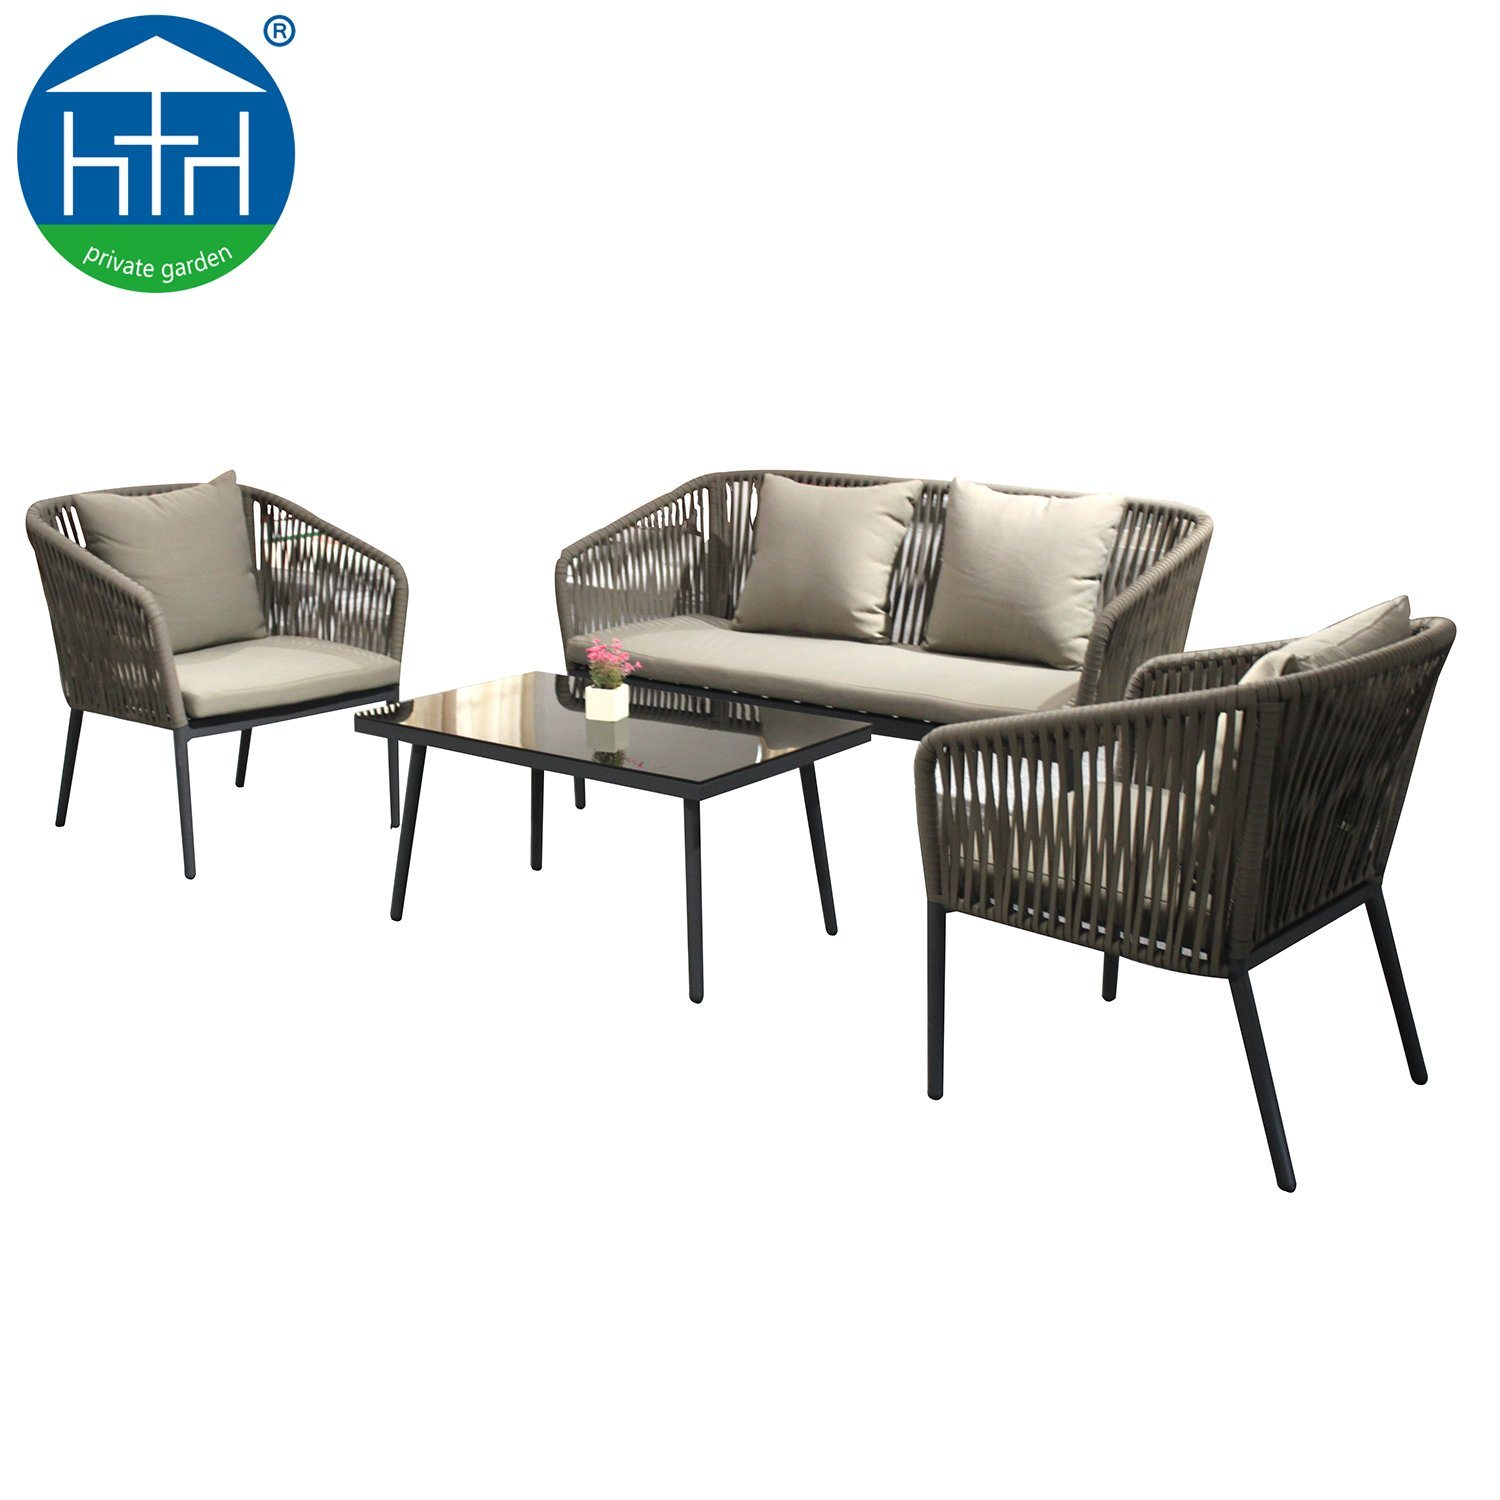 Rope Patio Furniture.Hot Item Big Loading Capacity Outdoor Furniture Polyester Rope Patio Sofa Chair Garden Set